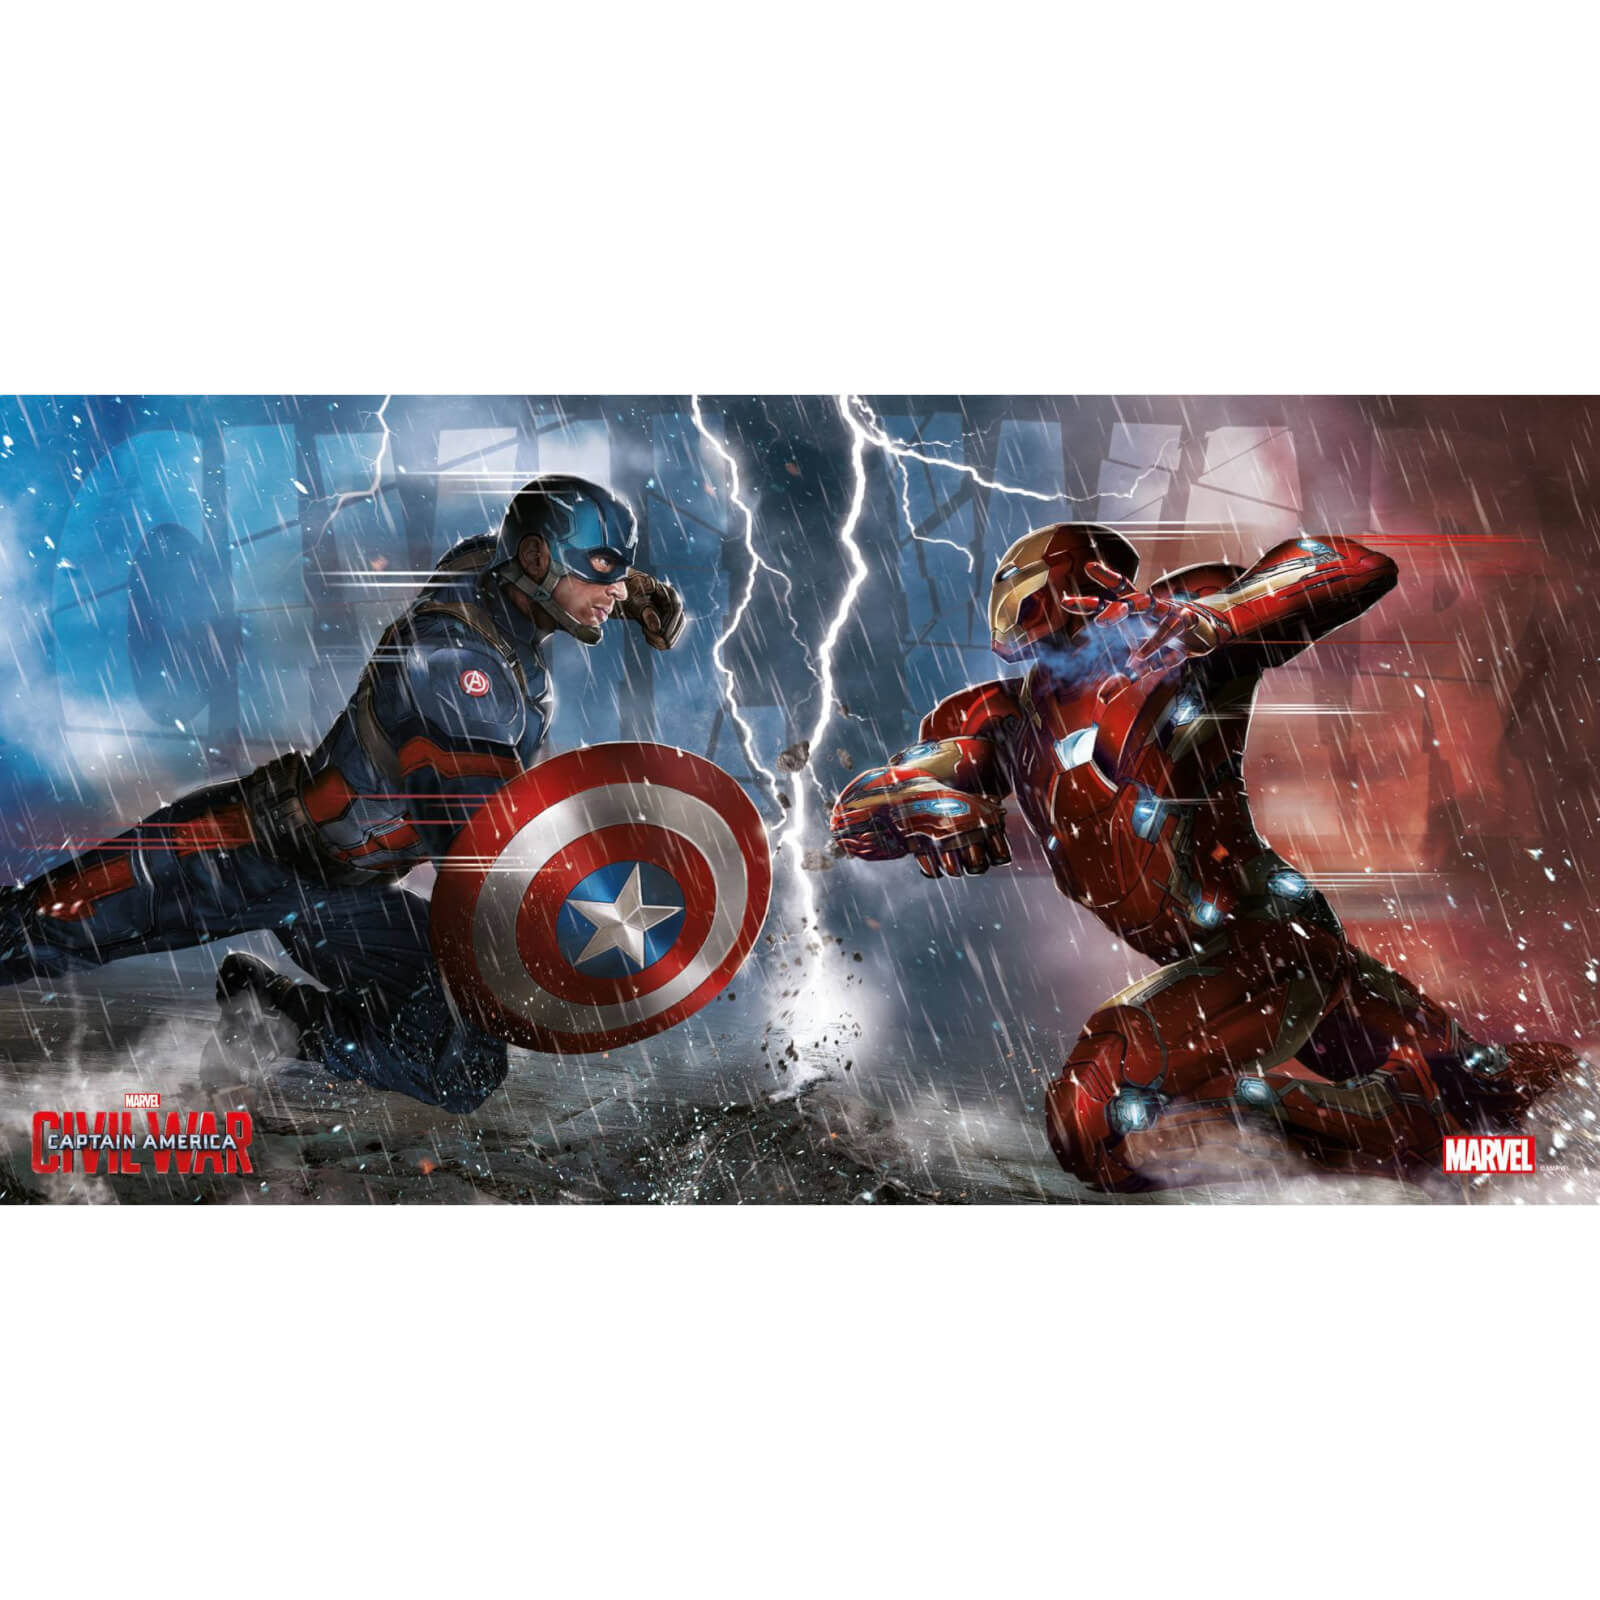 Captain America Civil War Glass Poster - Duel (60 x 30cm)